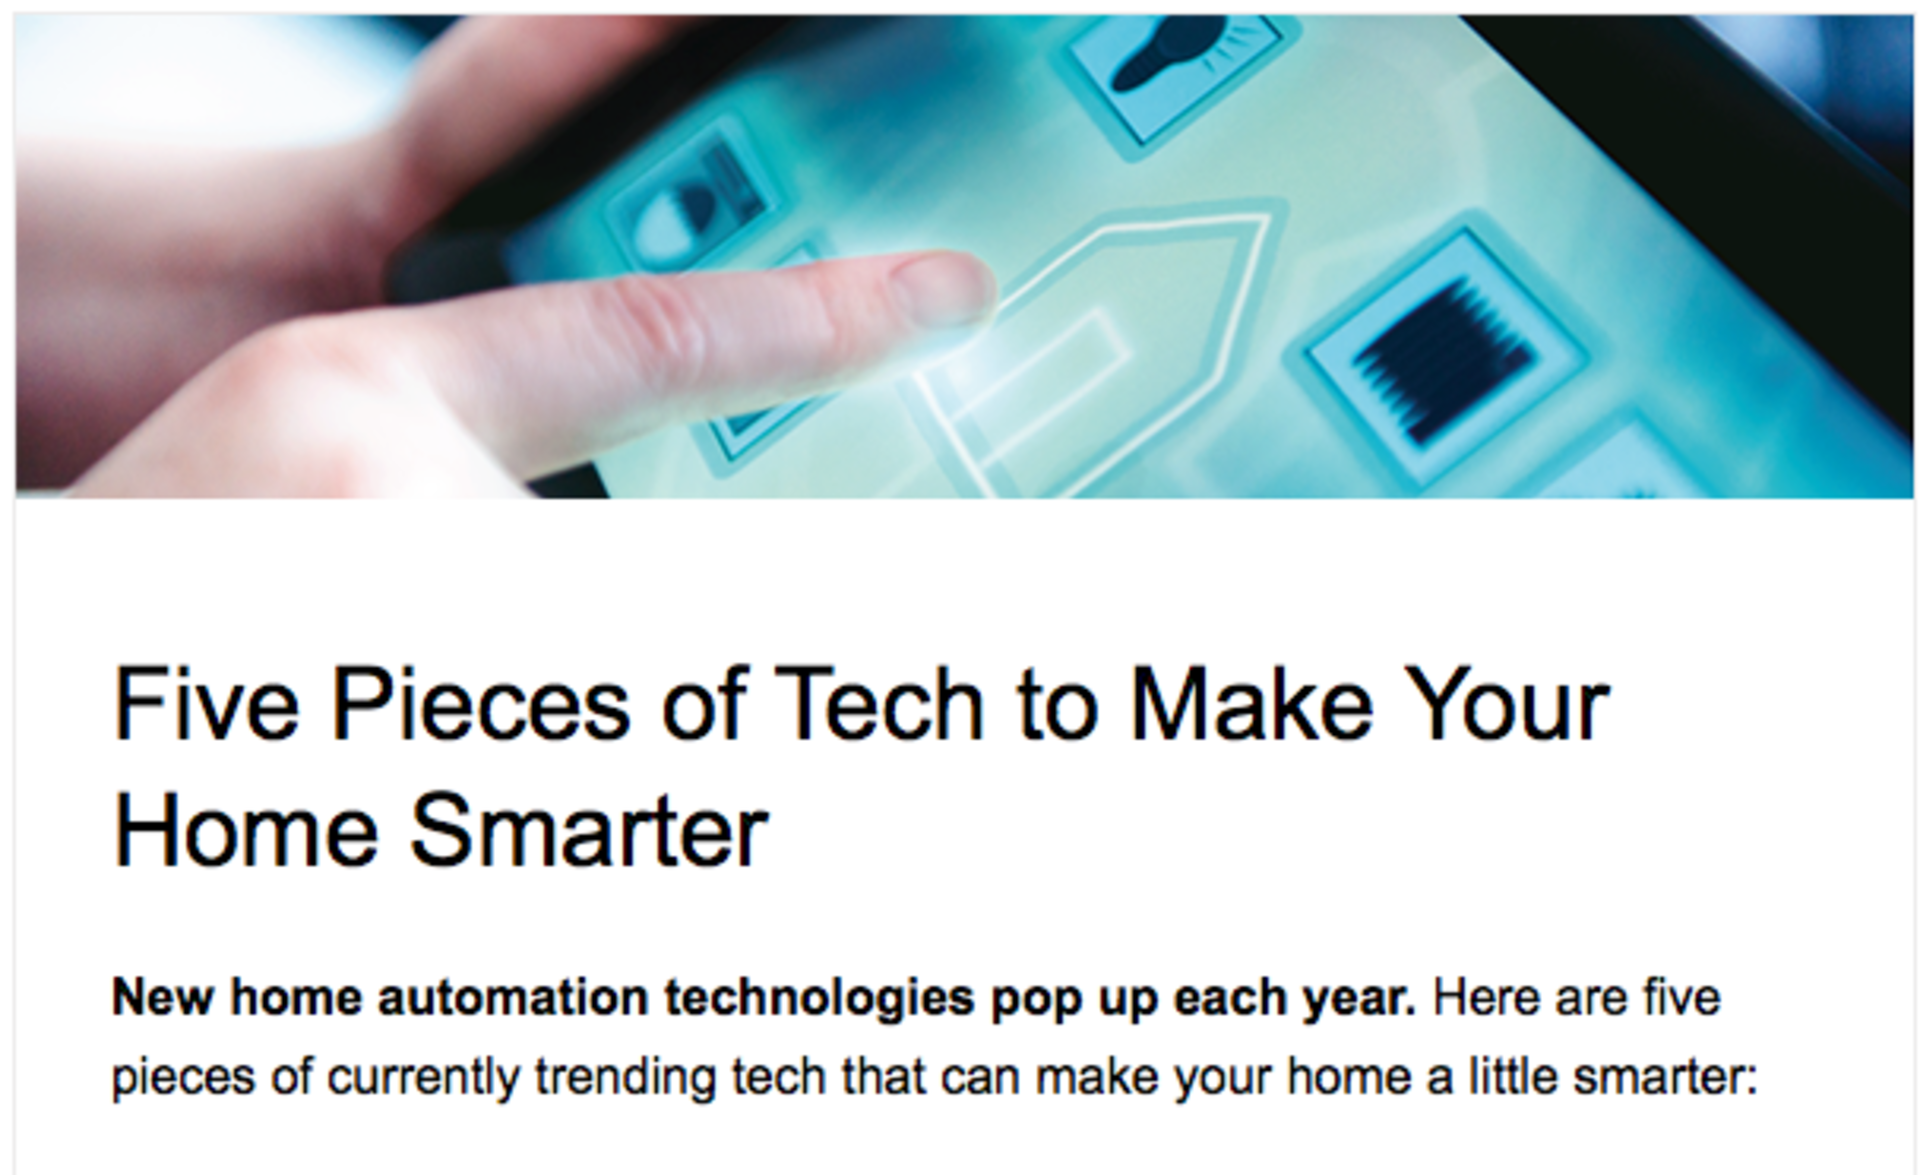 Five Pieces of Tech to Make Your Home Smarter